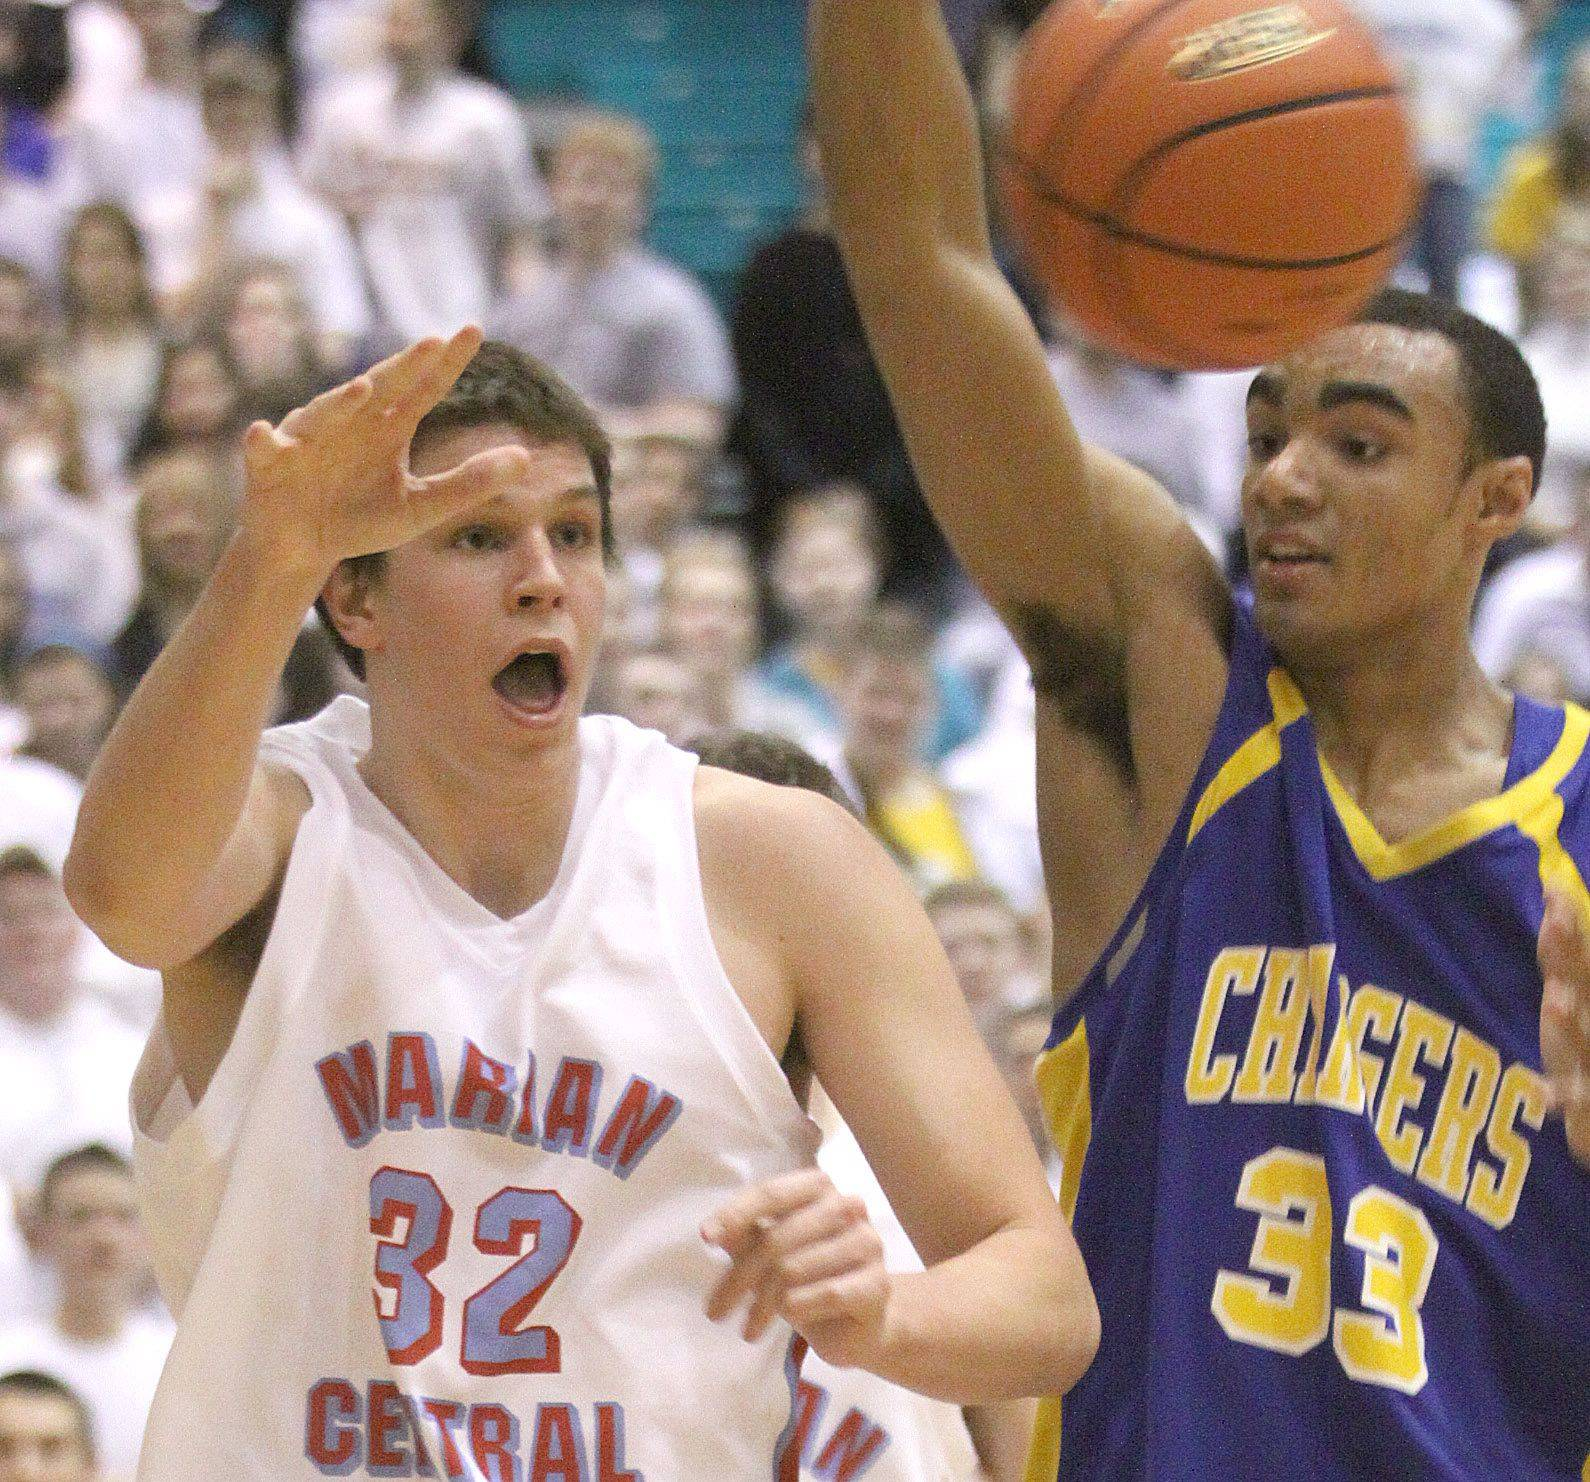 Aurora Central Catholic's Robert DeMyers, right, and Marian Central's Ben Krol scramble for control of a loose ball.